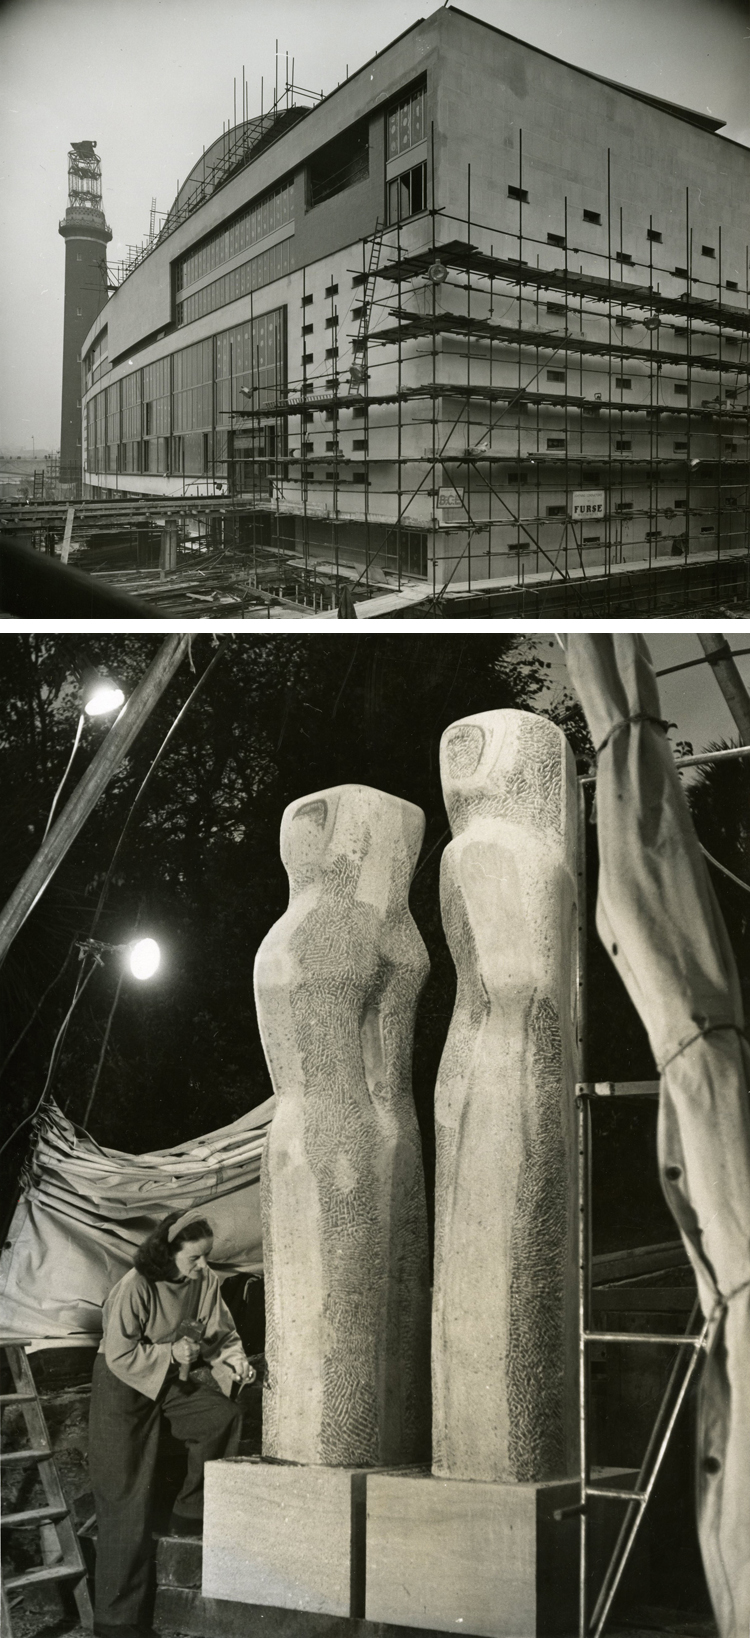 Photograph of Royal Festival Hall under construction on London's South Bank, 24th November 1950, and sculptor Barbara Hepworth working on pieces at her St. Ives studio for the Festival of Britain exhibition, 25th October 1950 (WORK 25/201)